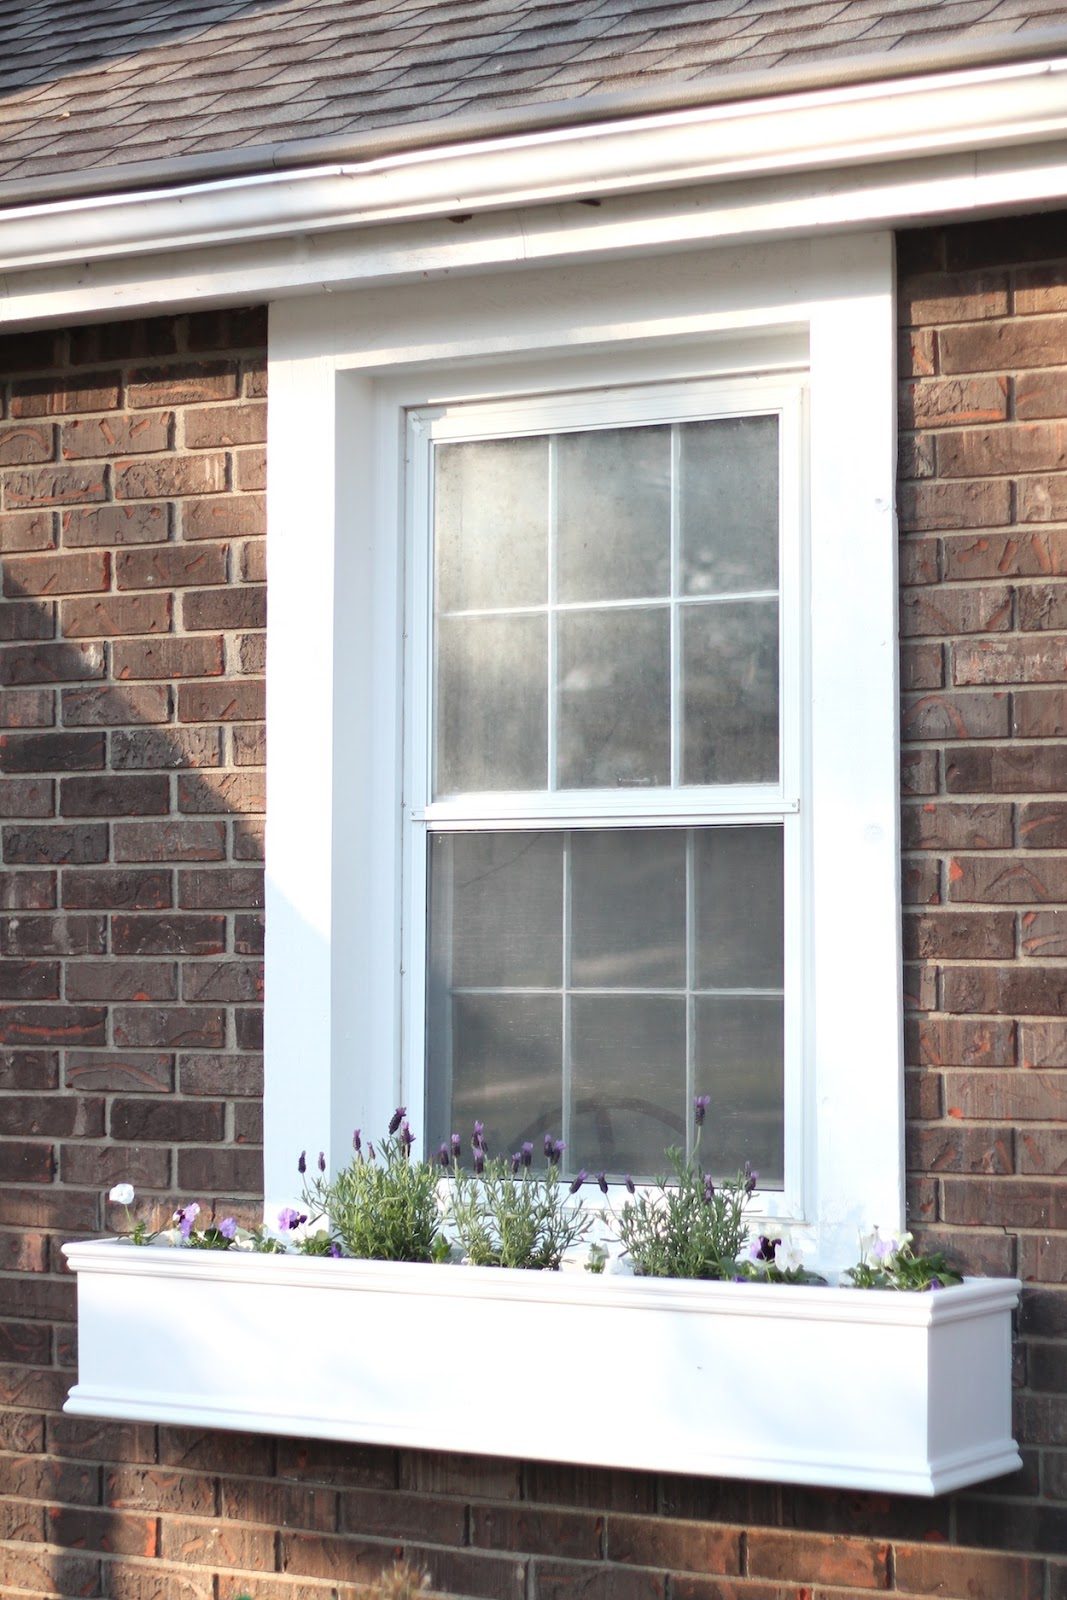 Diy Garden Window Plans How To Make Window Boxes Diy Window Planters To Add